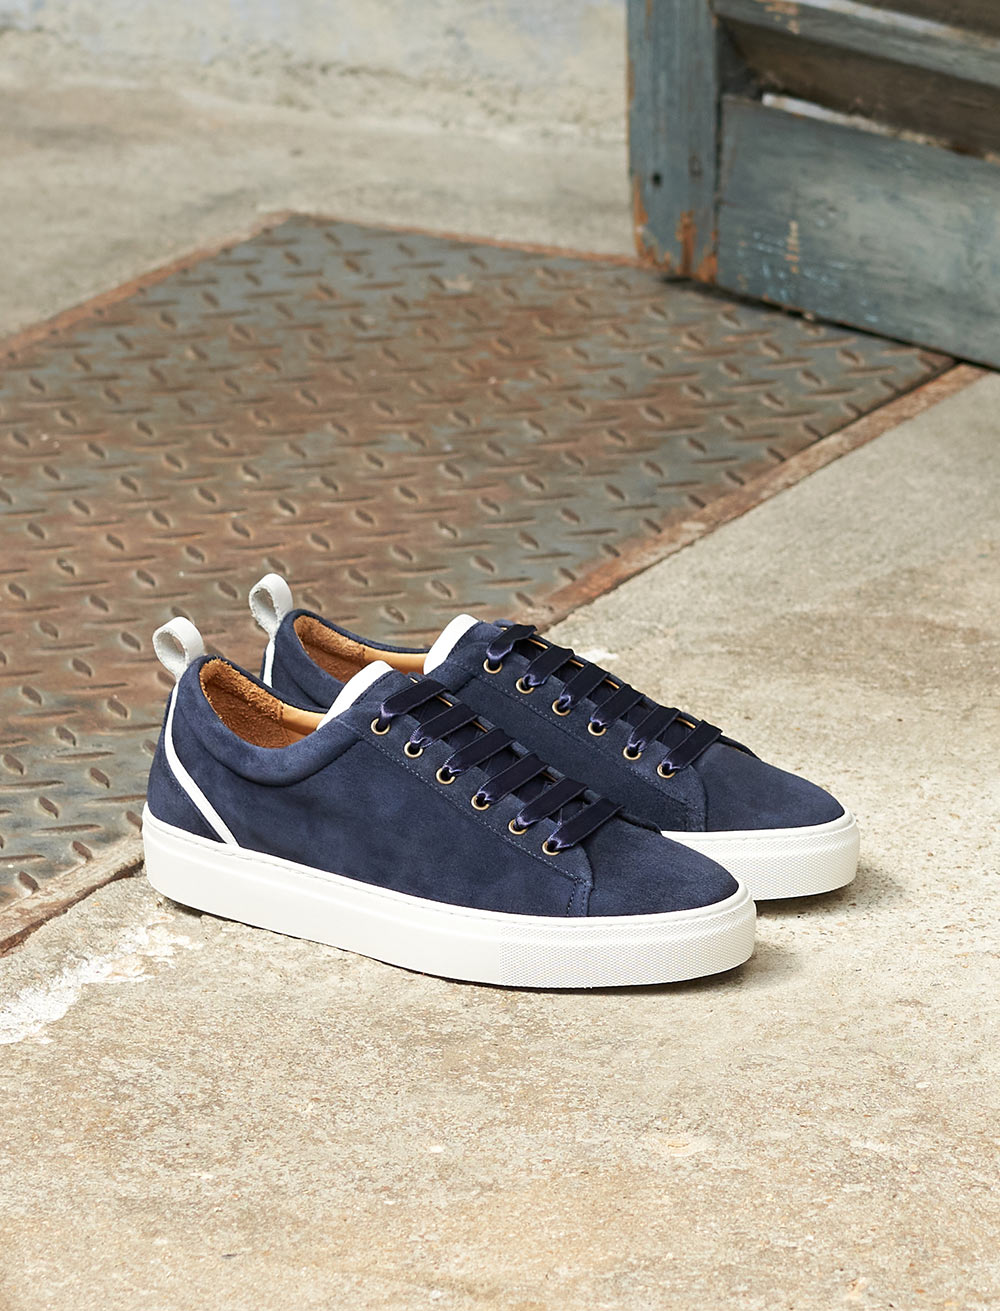 Sneakers Lola - Navy blue and white